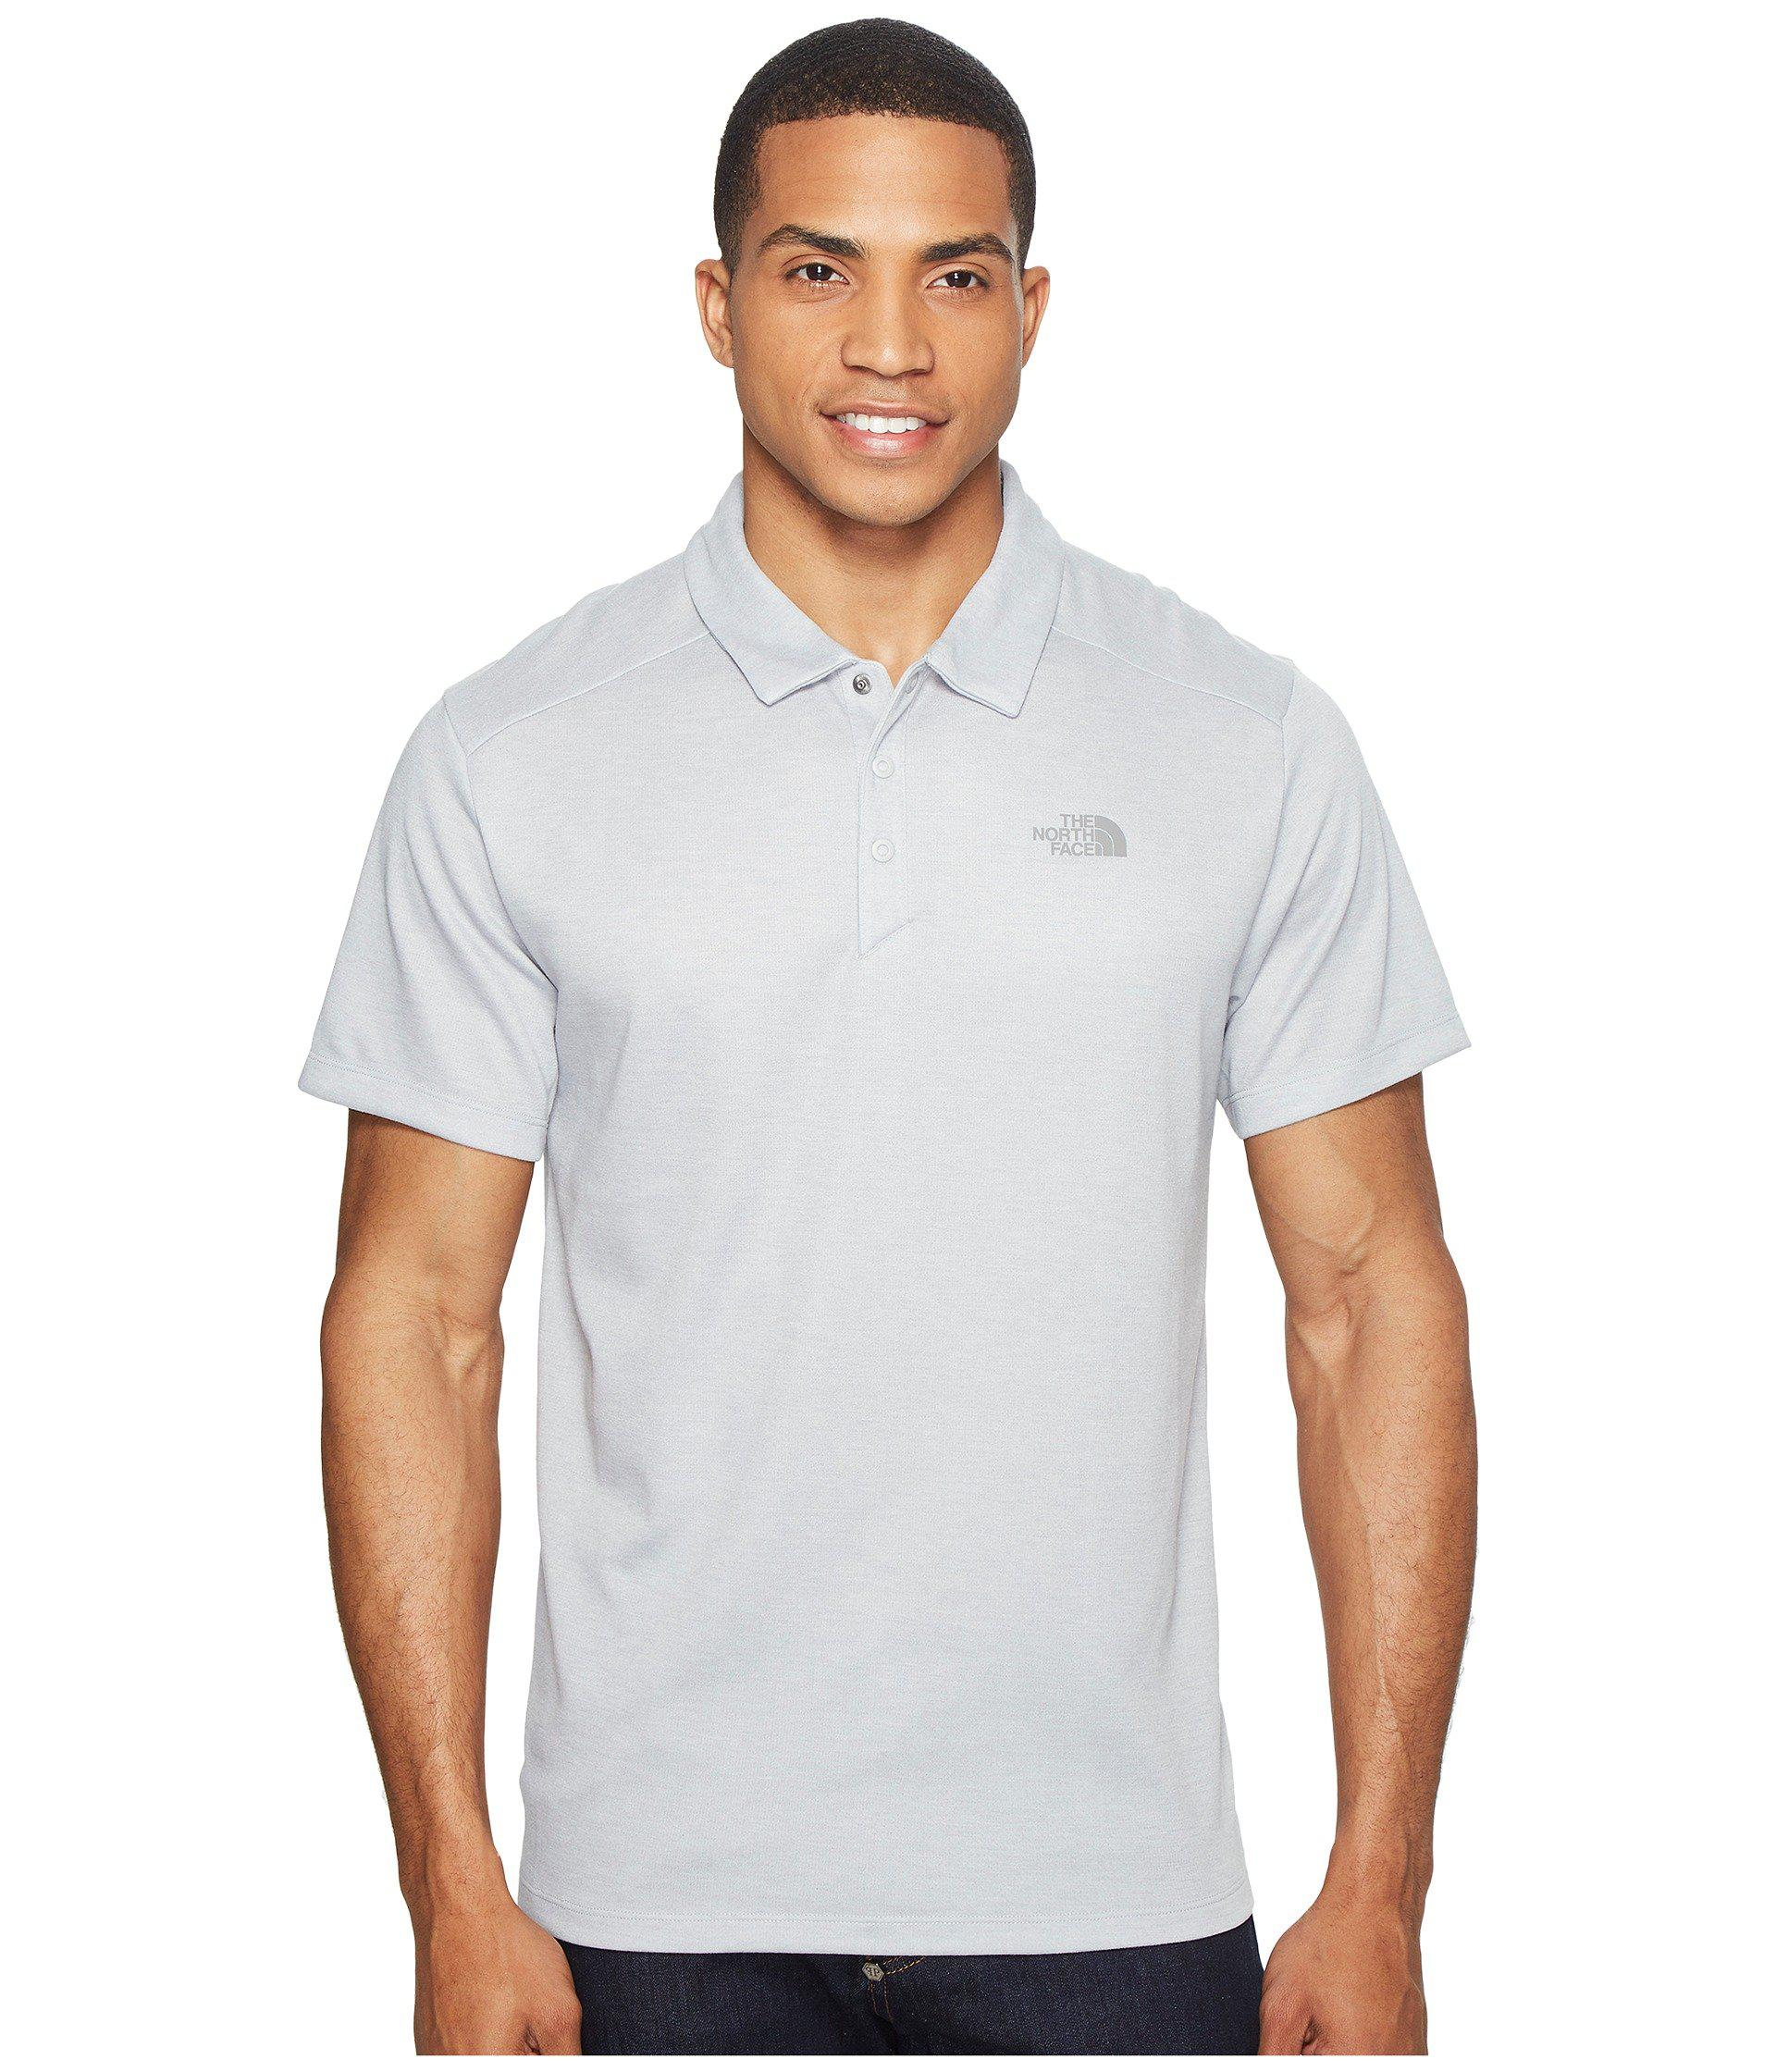 8f2ef7635 Lyst - The North Face Short Sleeve Crag Polo in Gray for Men